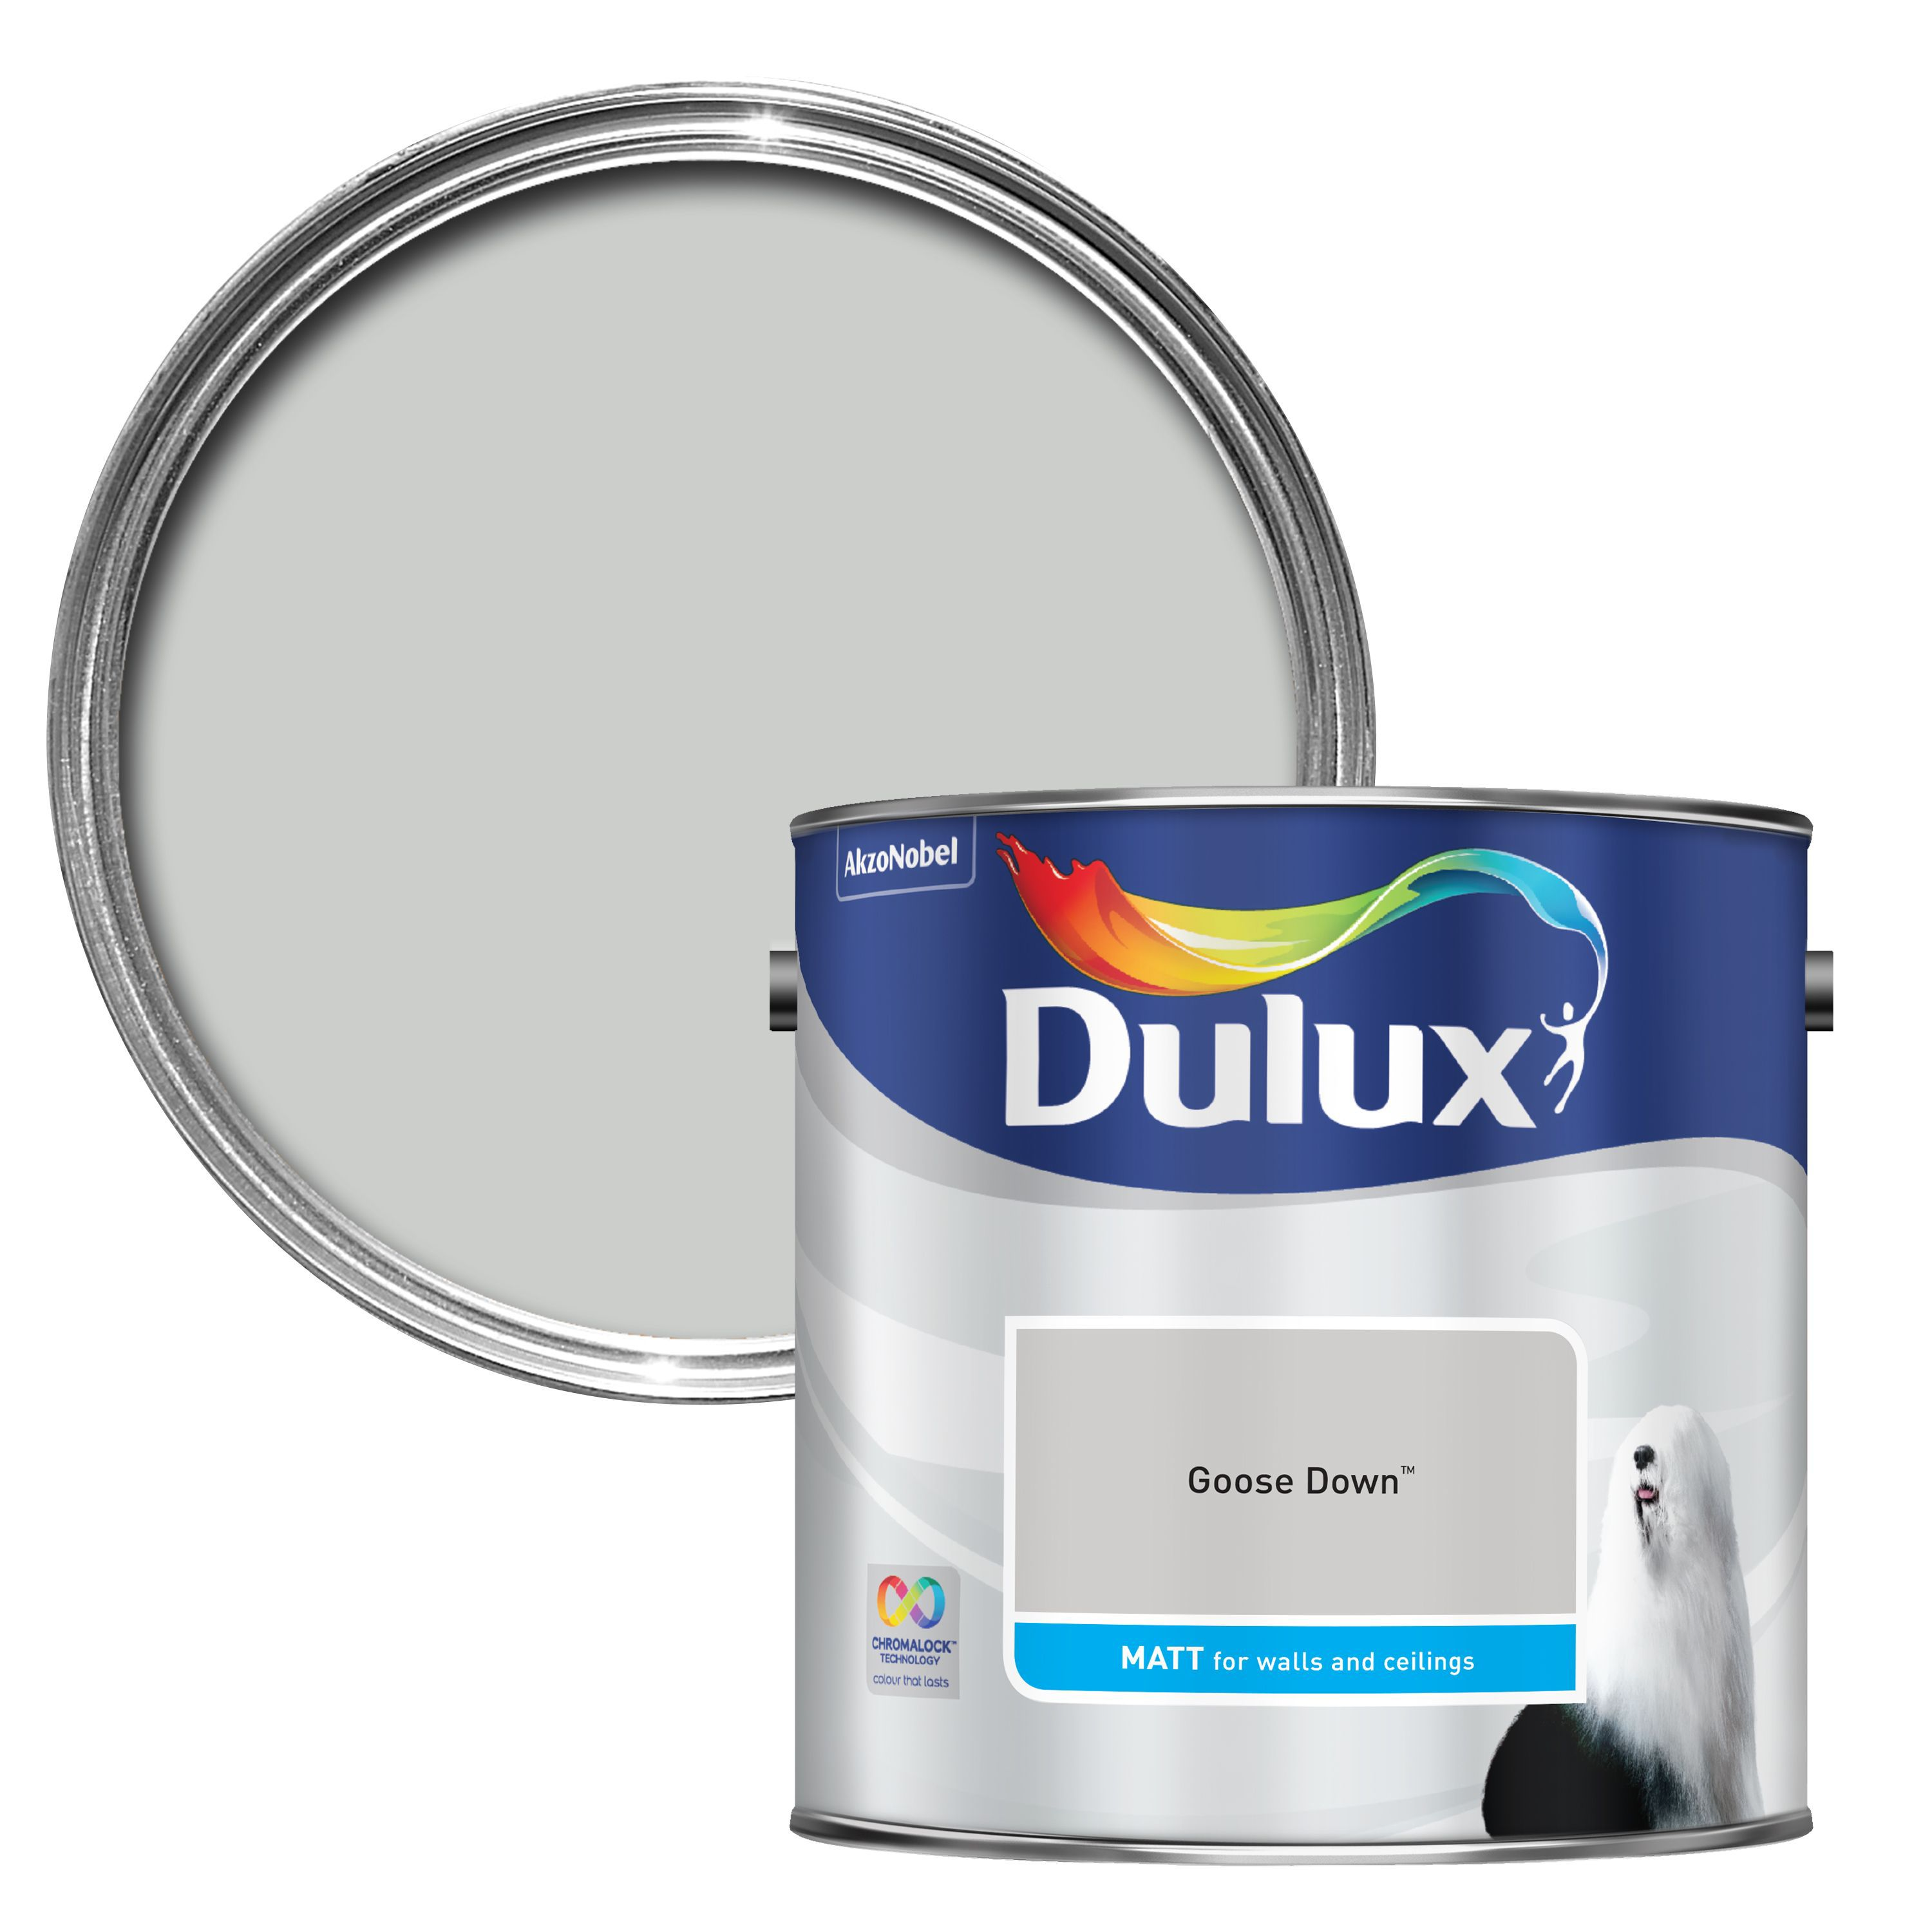 Dulux Standard Goose Down Matt Wall & Ceiling Paint 2.5l